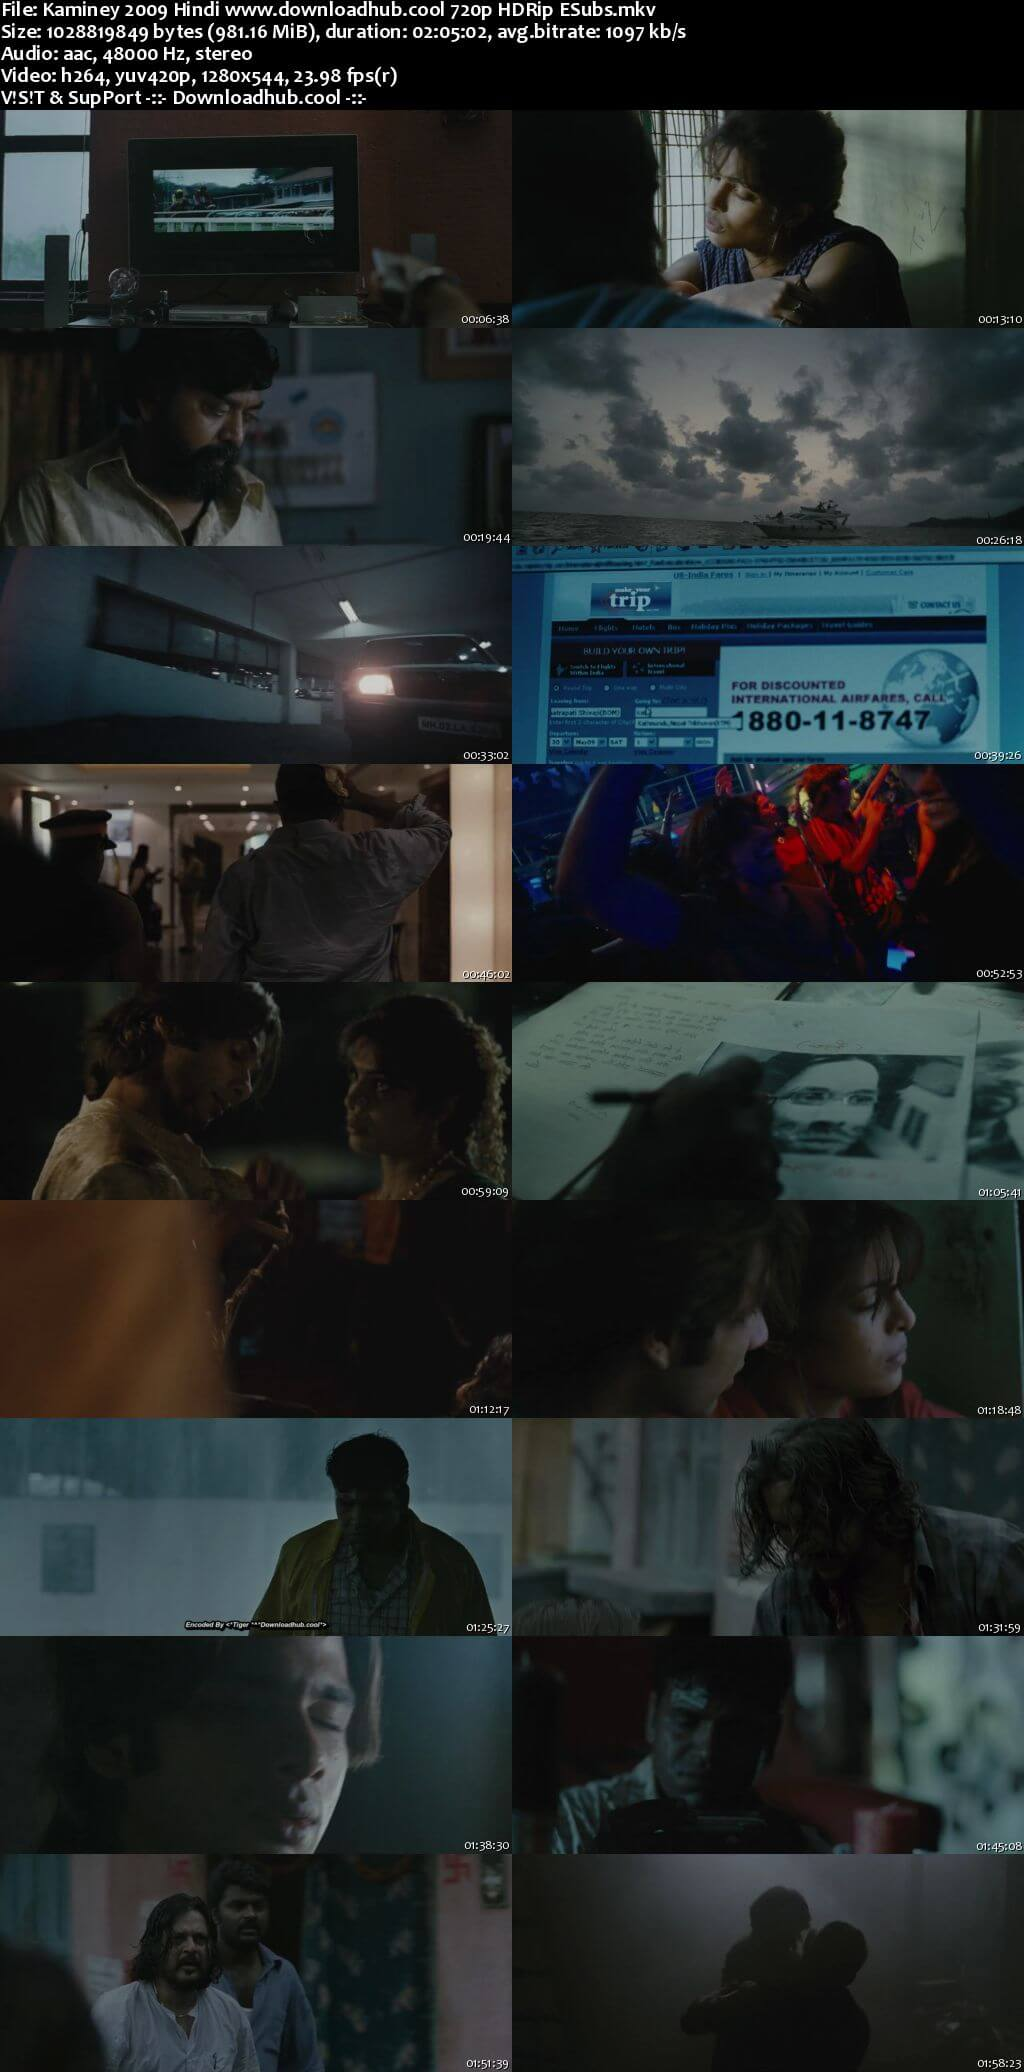 Kaminey 2009 Hindi 720p HDRip ESubs